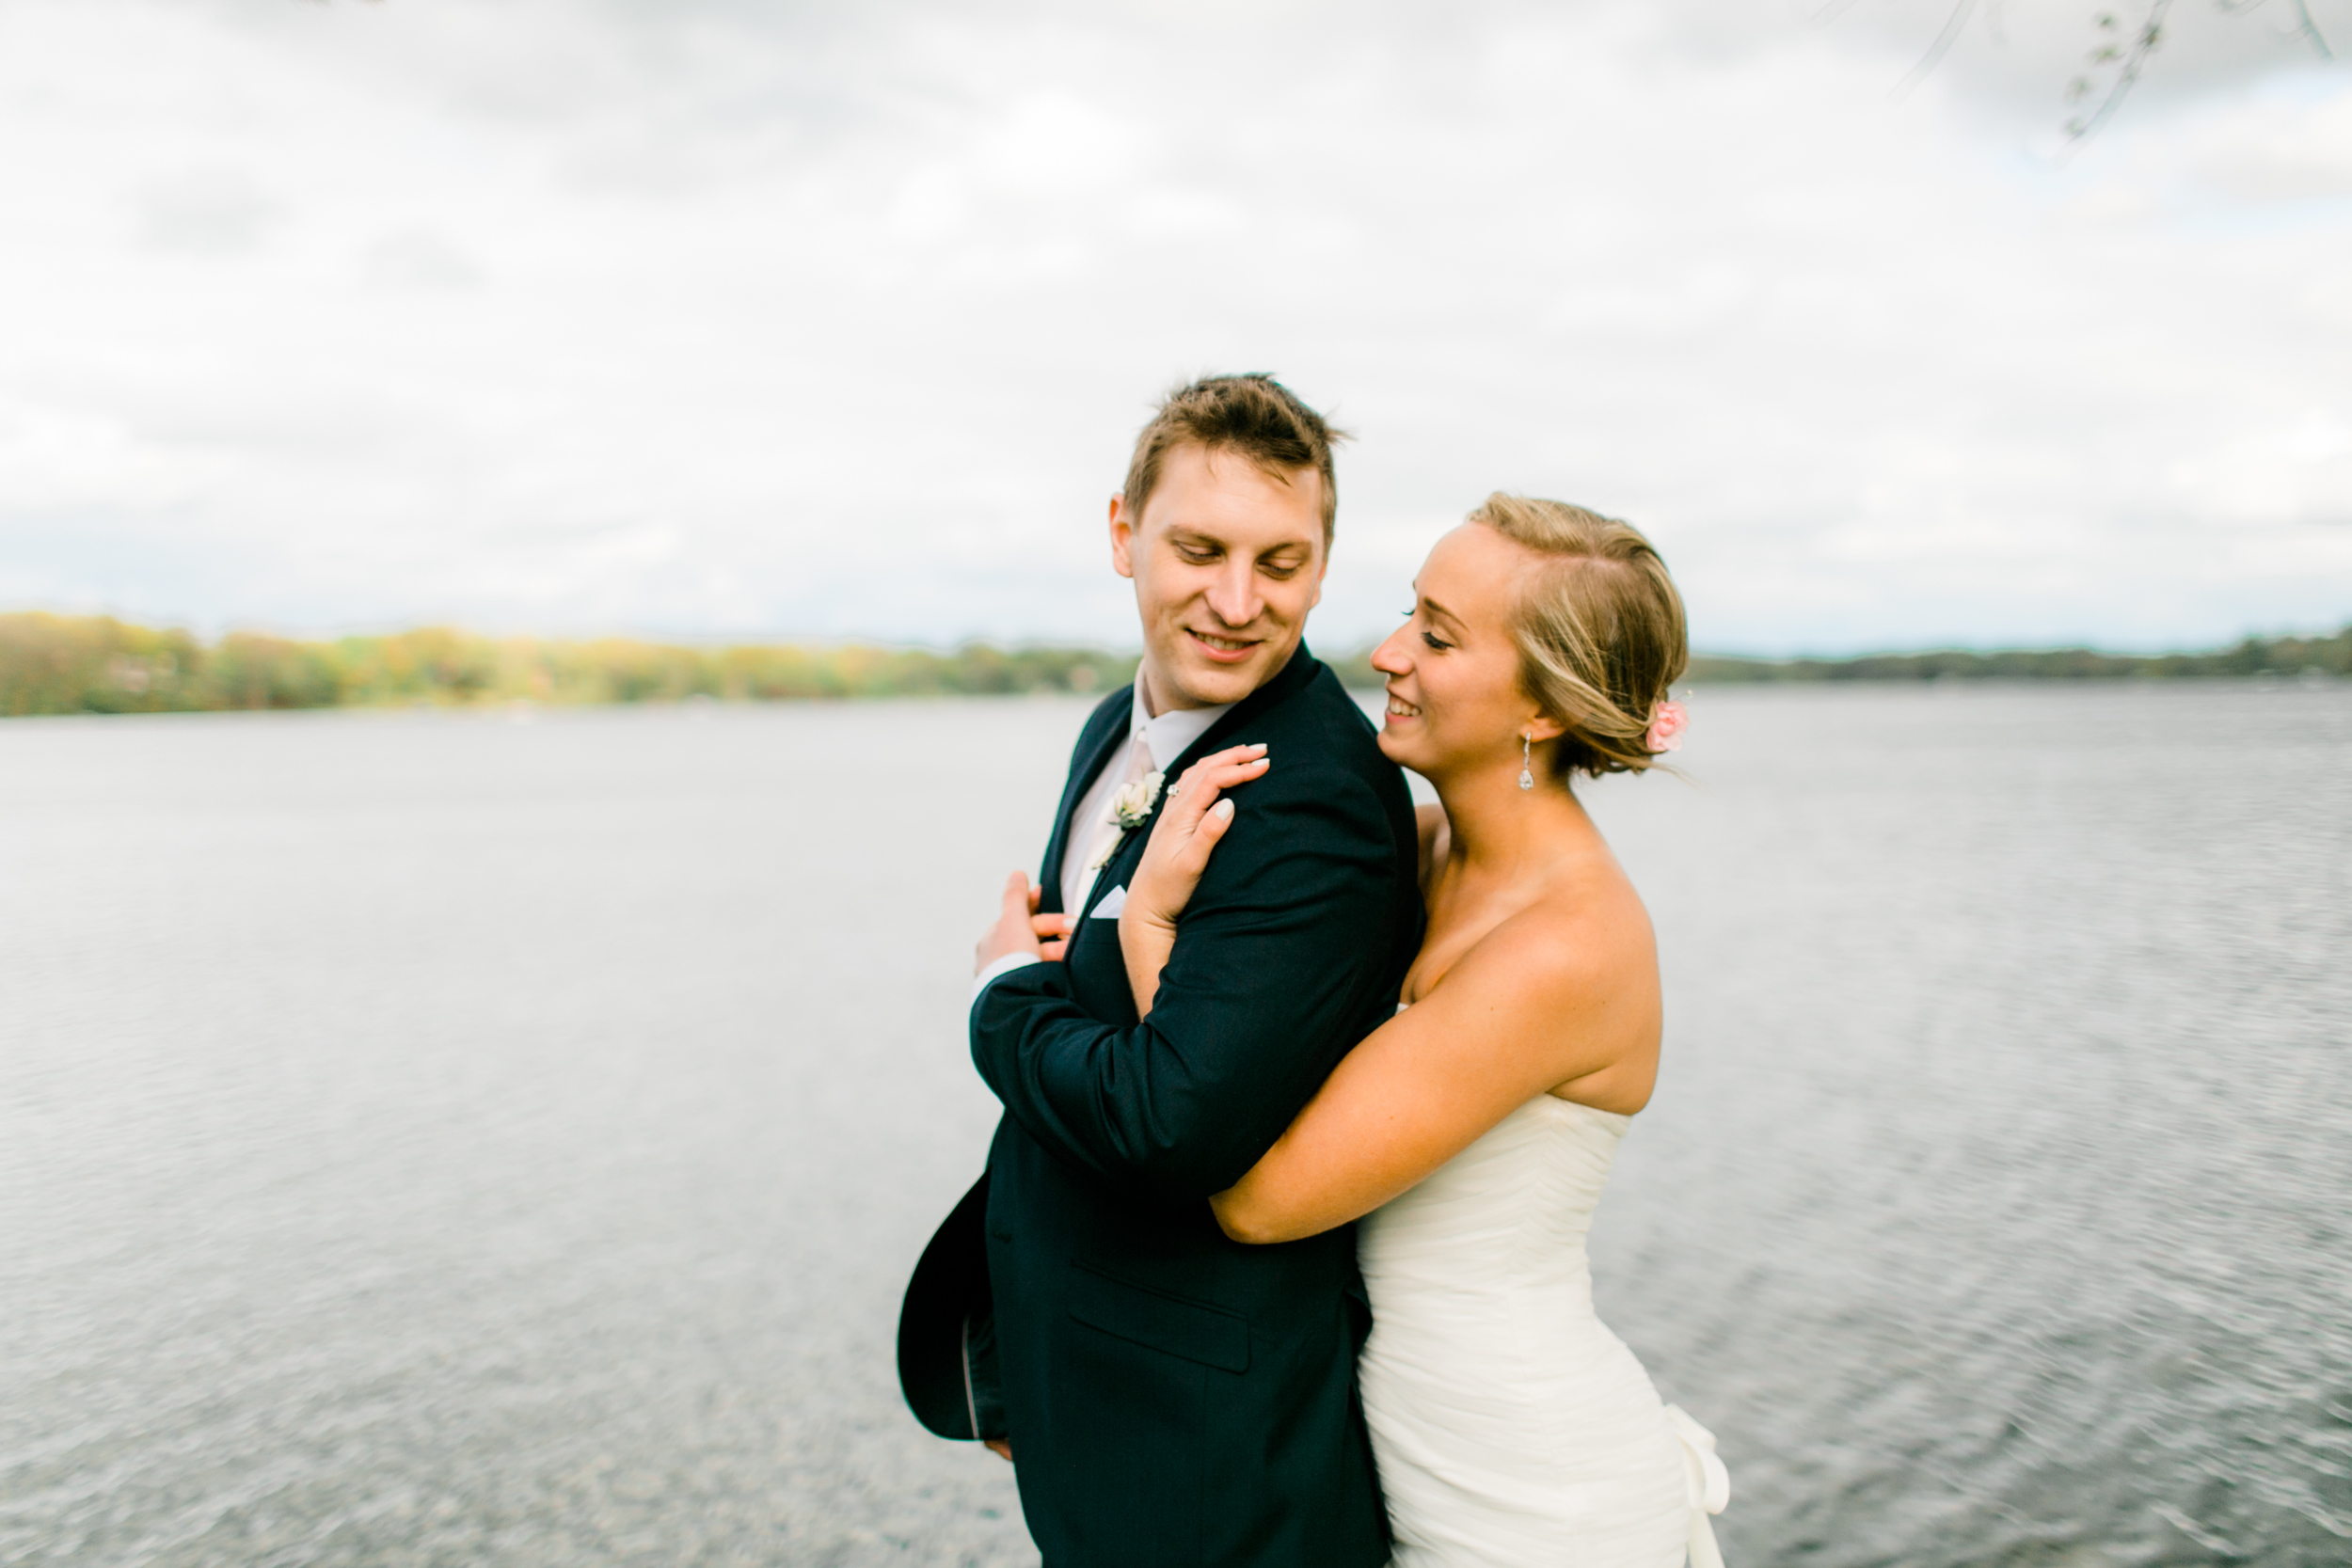 mayden photography weddings-39.jpg